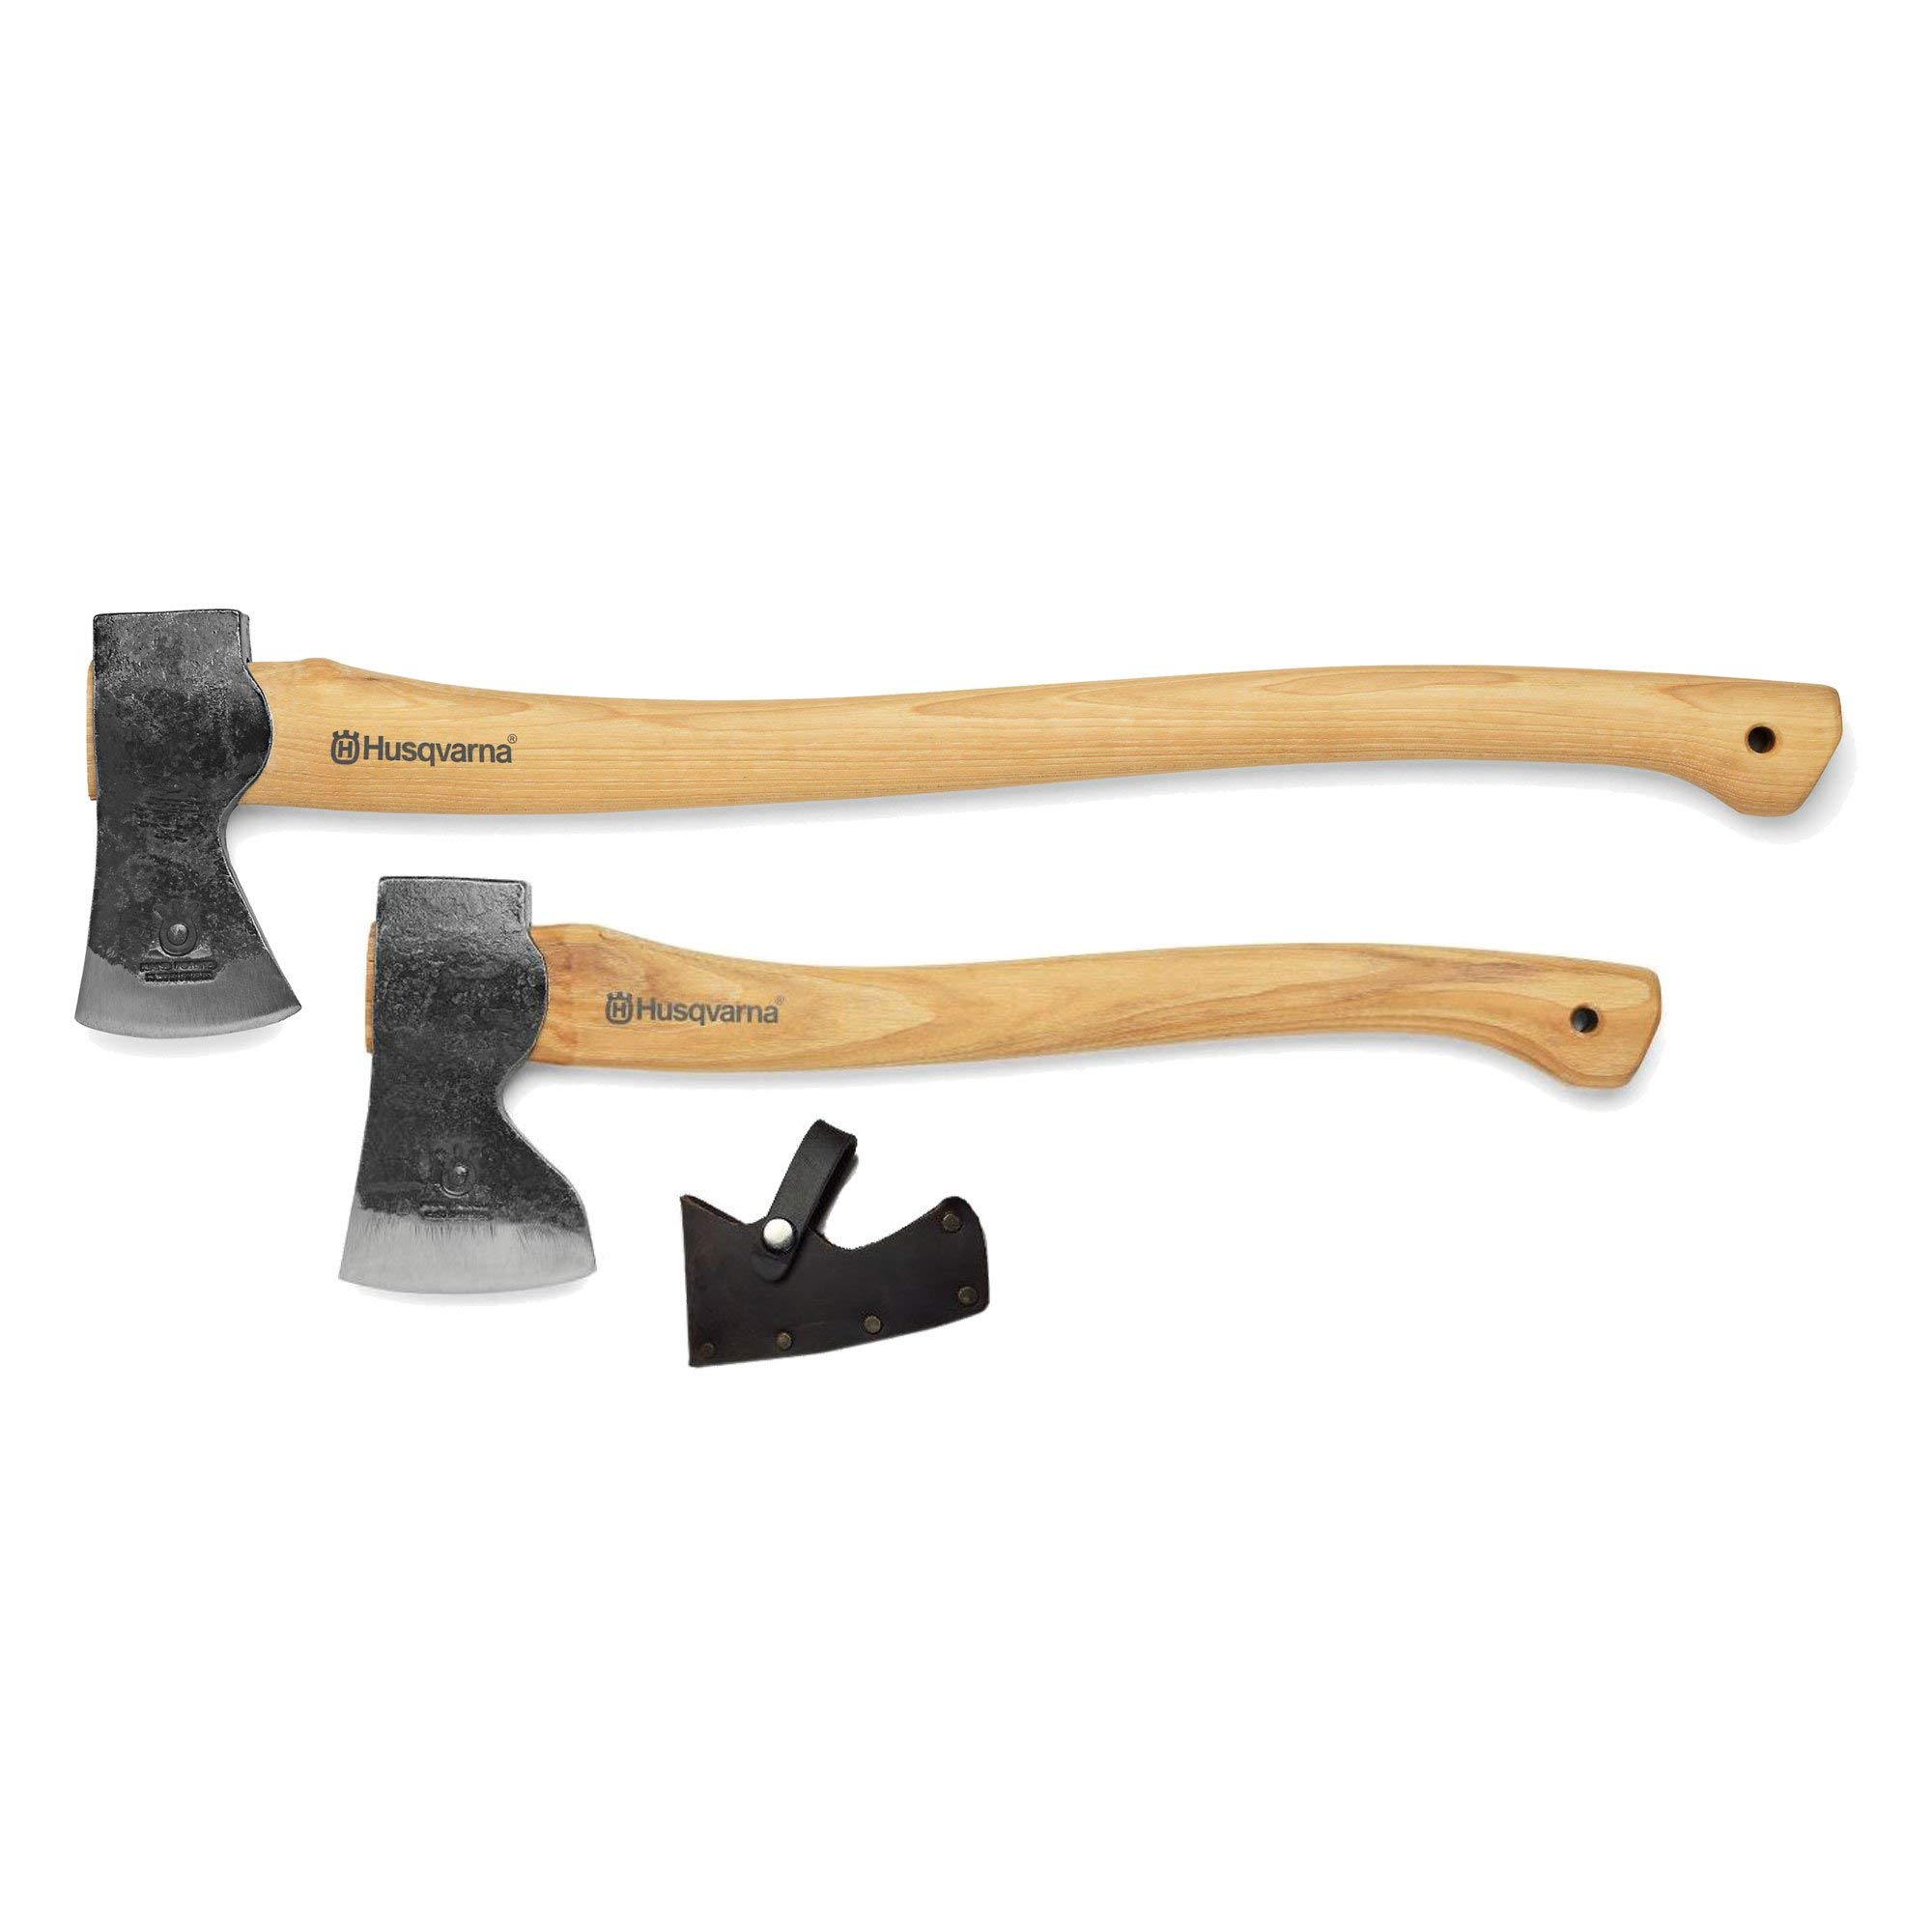 Husqvarna 26'' Curved Hickory Handle Logger Forest Axe with 19'' Carpenters Axe